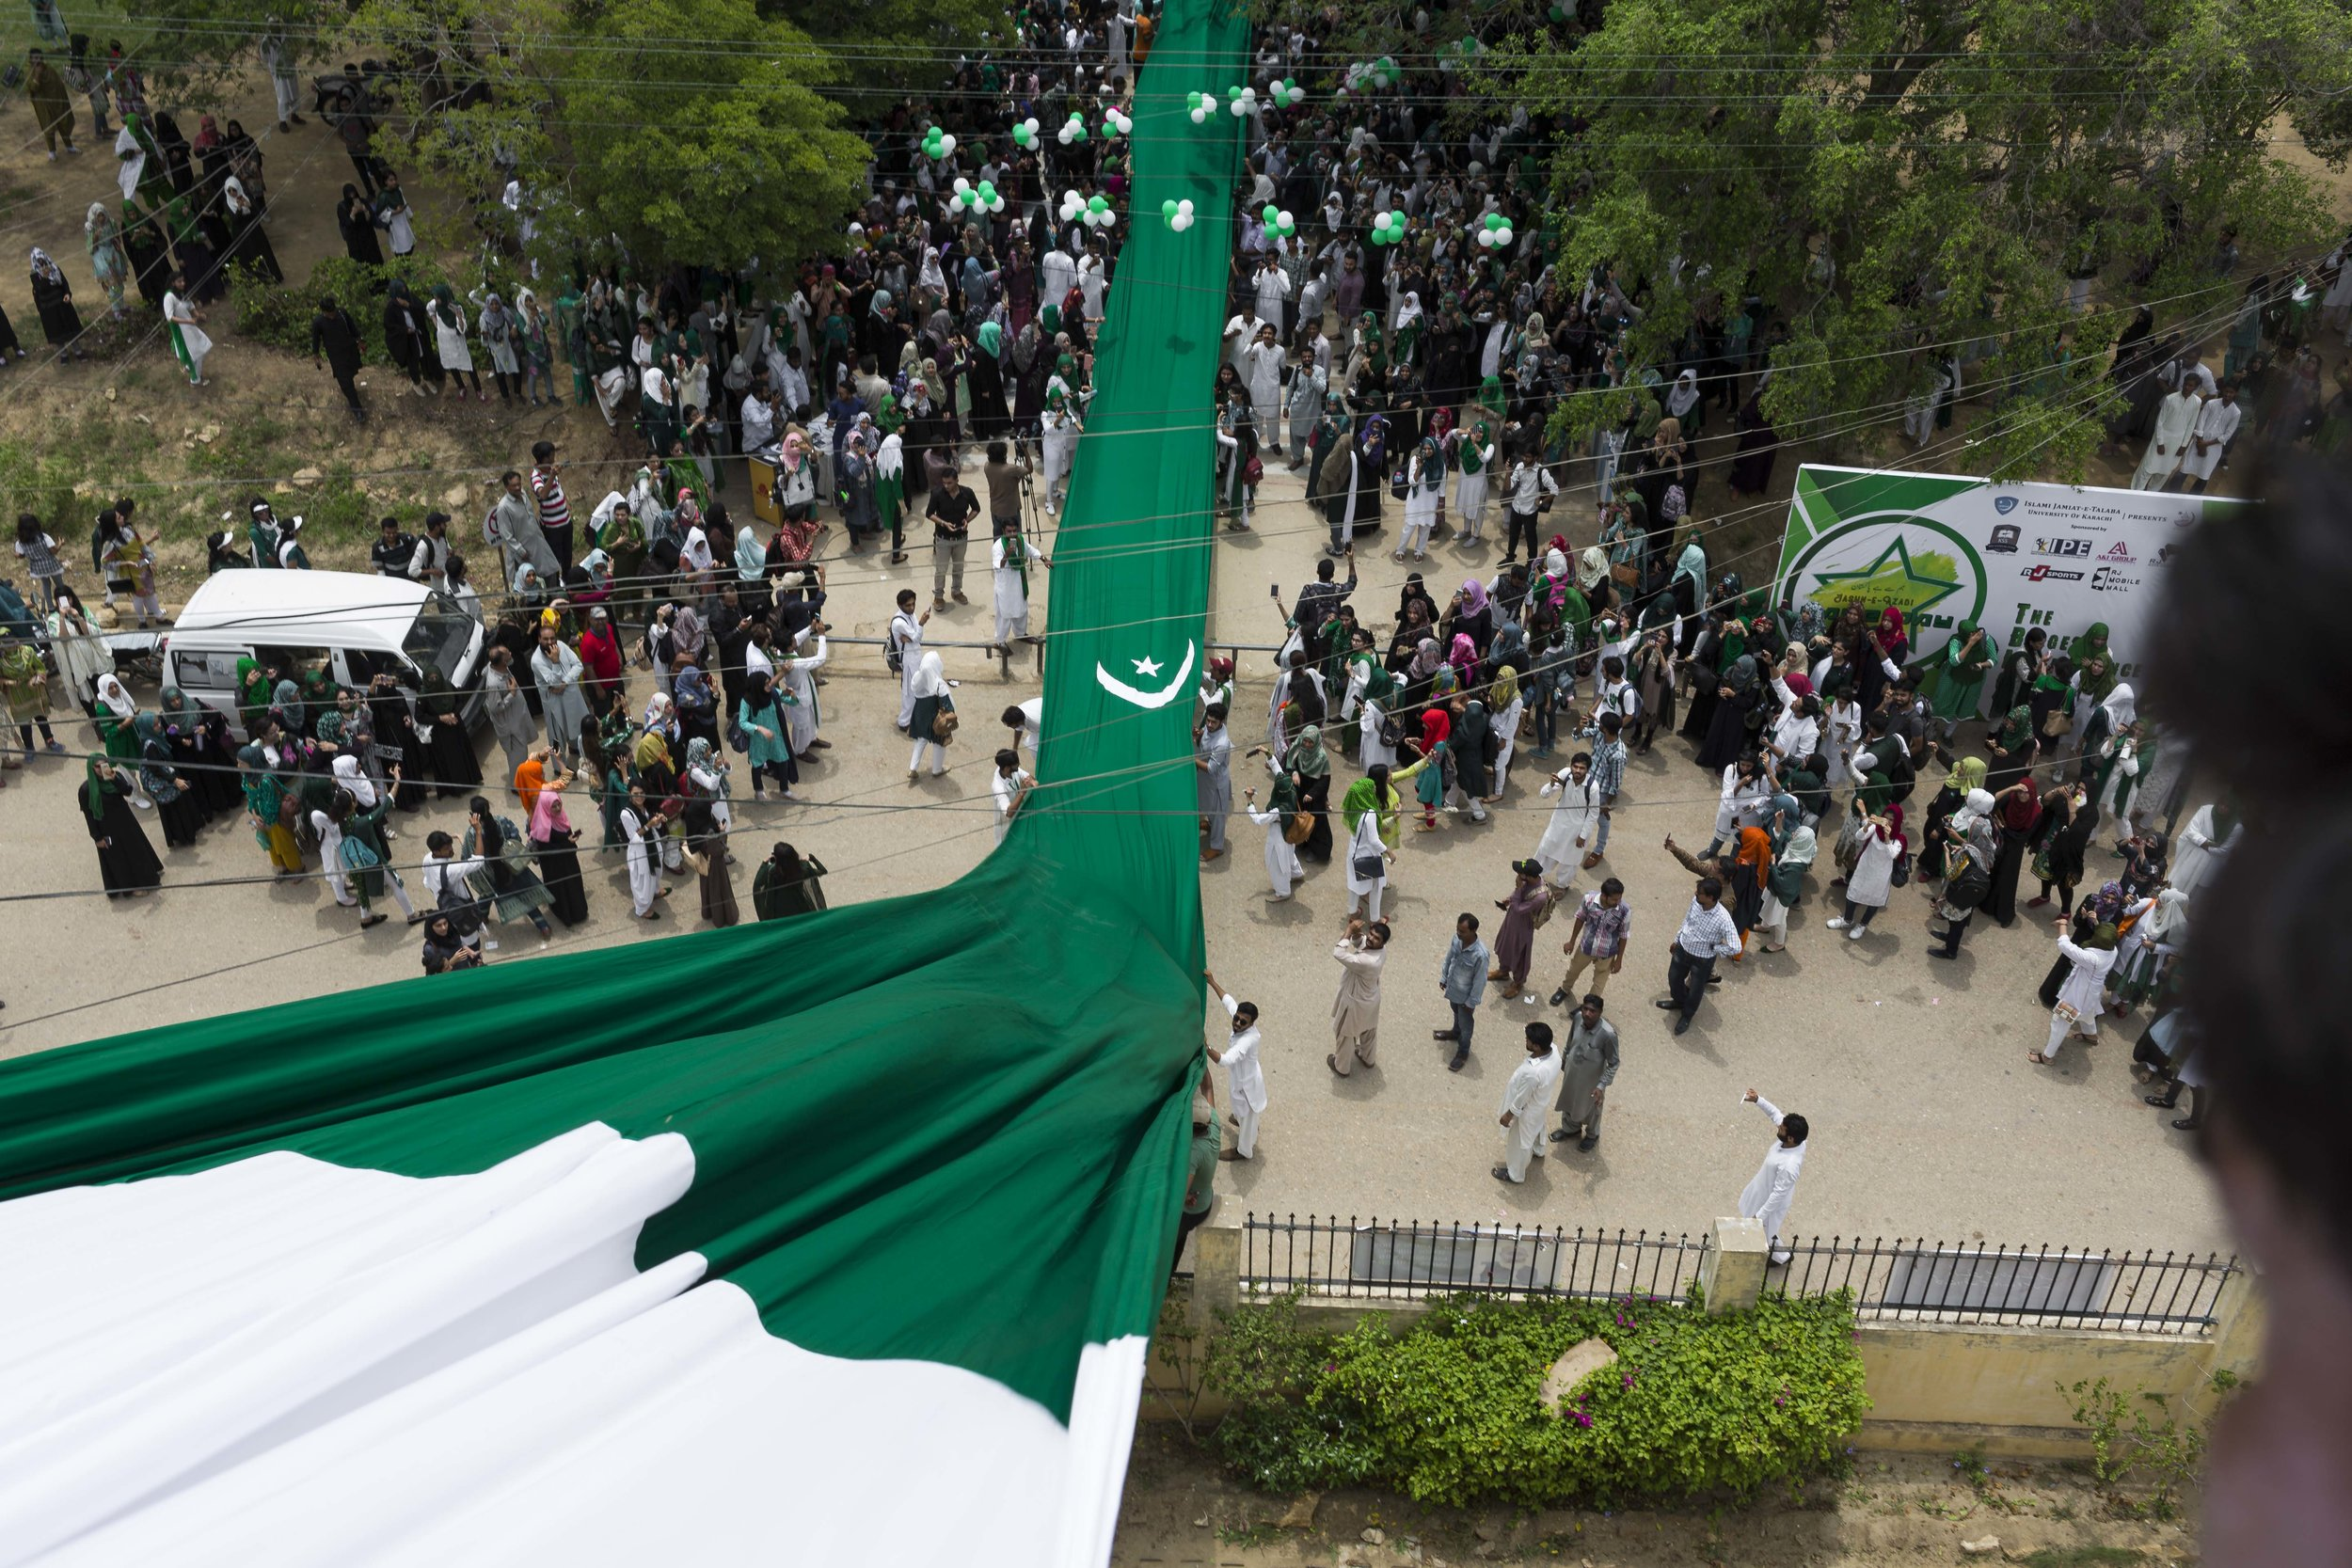 Students at the University of Karachi celebrate Cake Day, as Pakistan Independence Day grows nearer, on Thursday Aug 8, 2019.